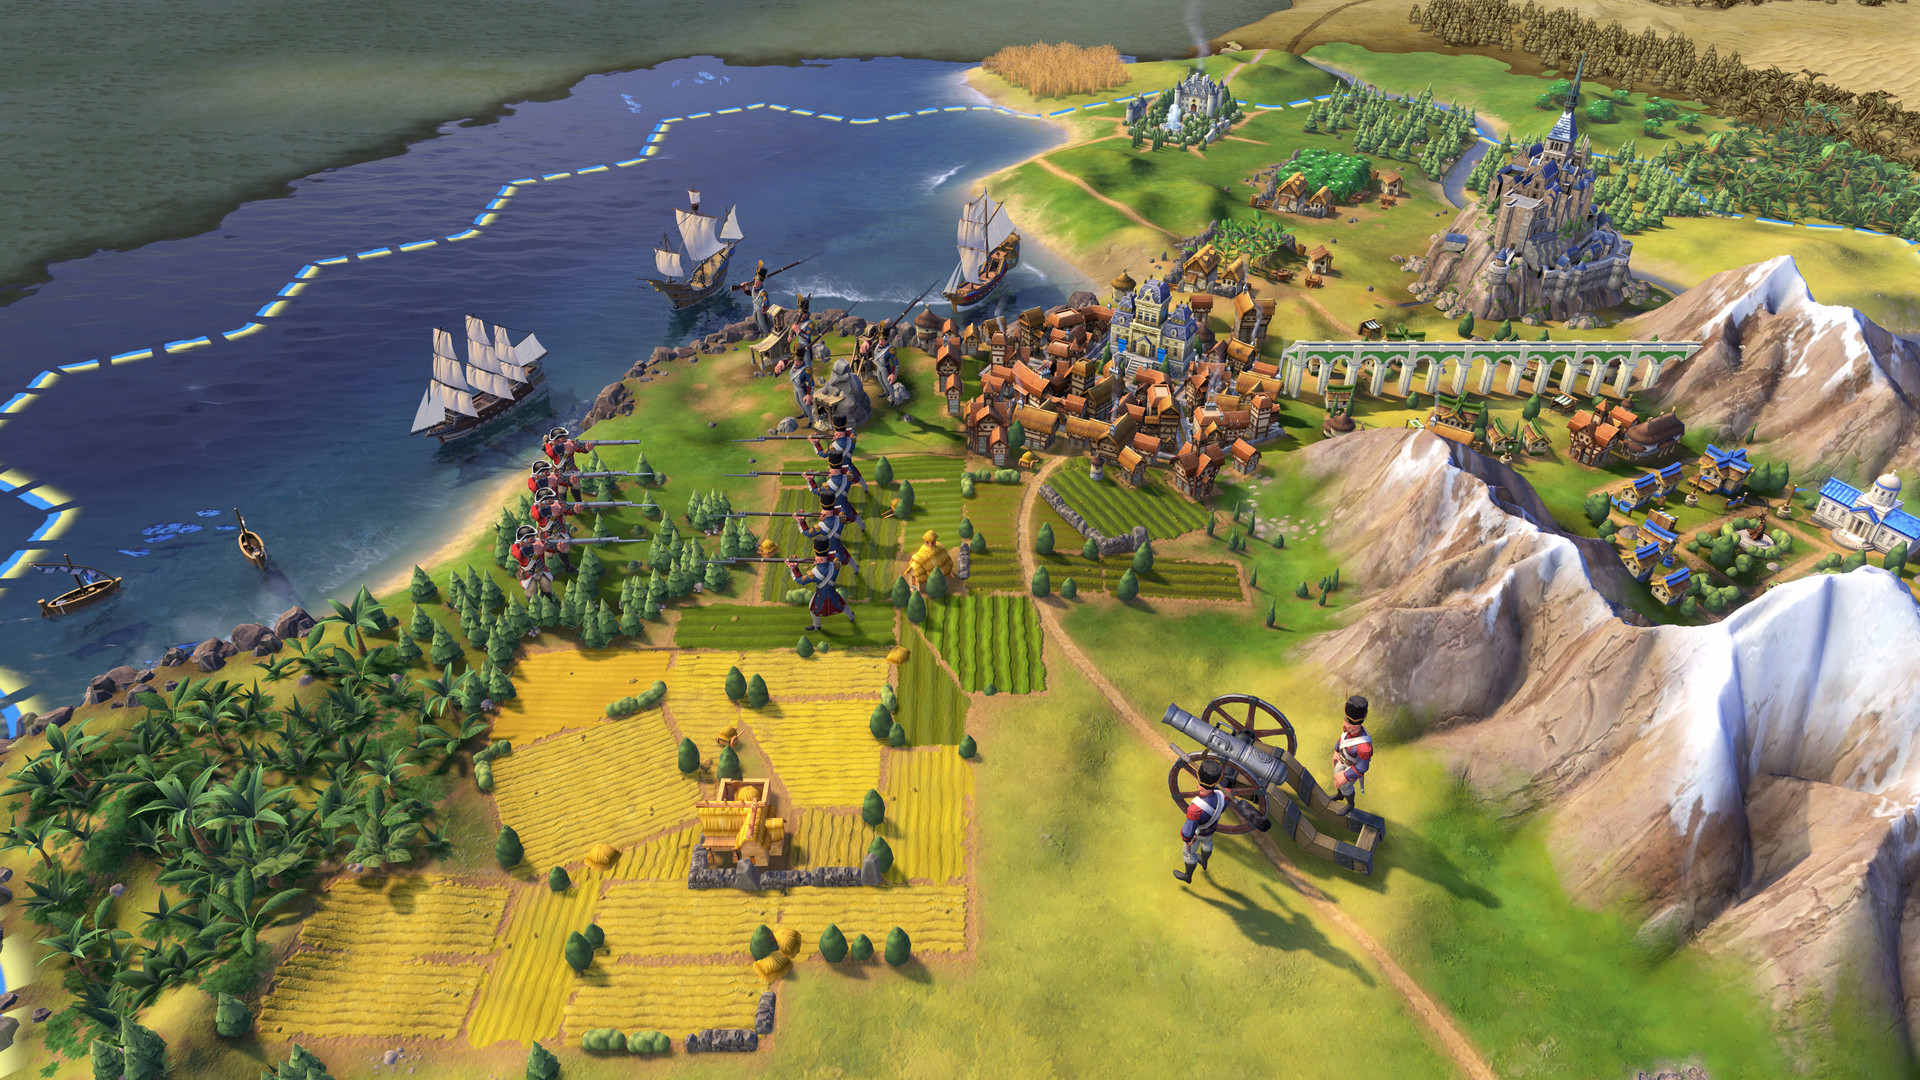 Strategy Gamer - The Civilization 6 Ethiopia Pack is Out Now - Steam News